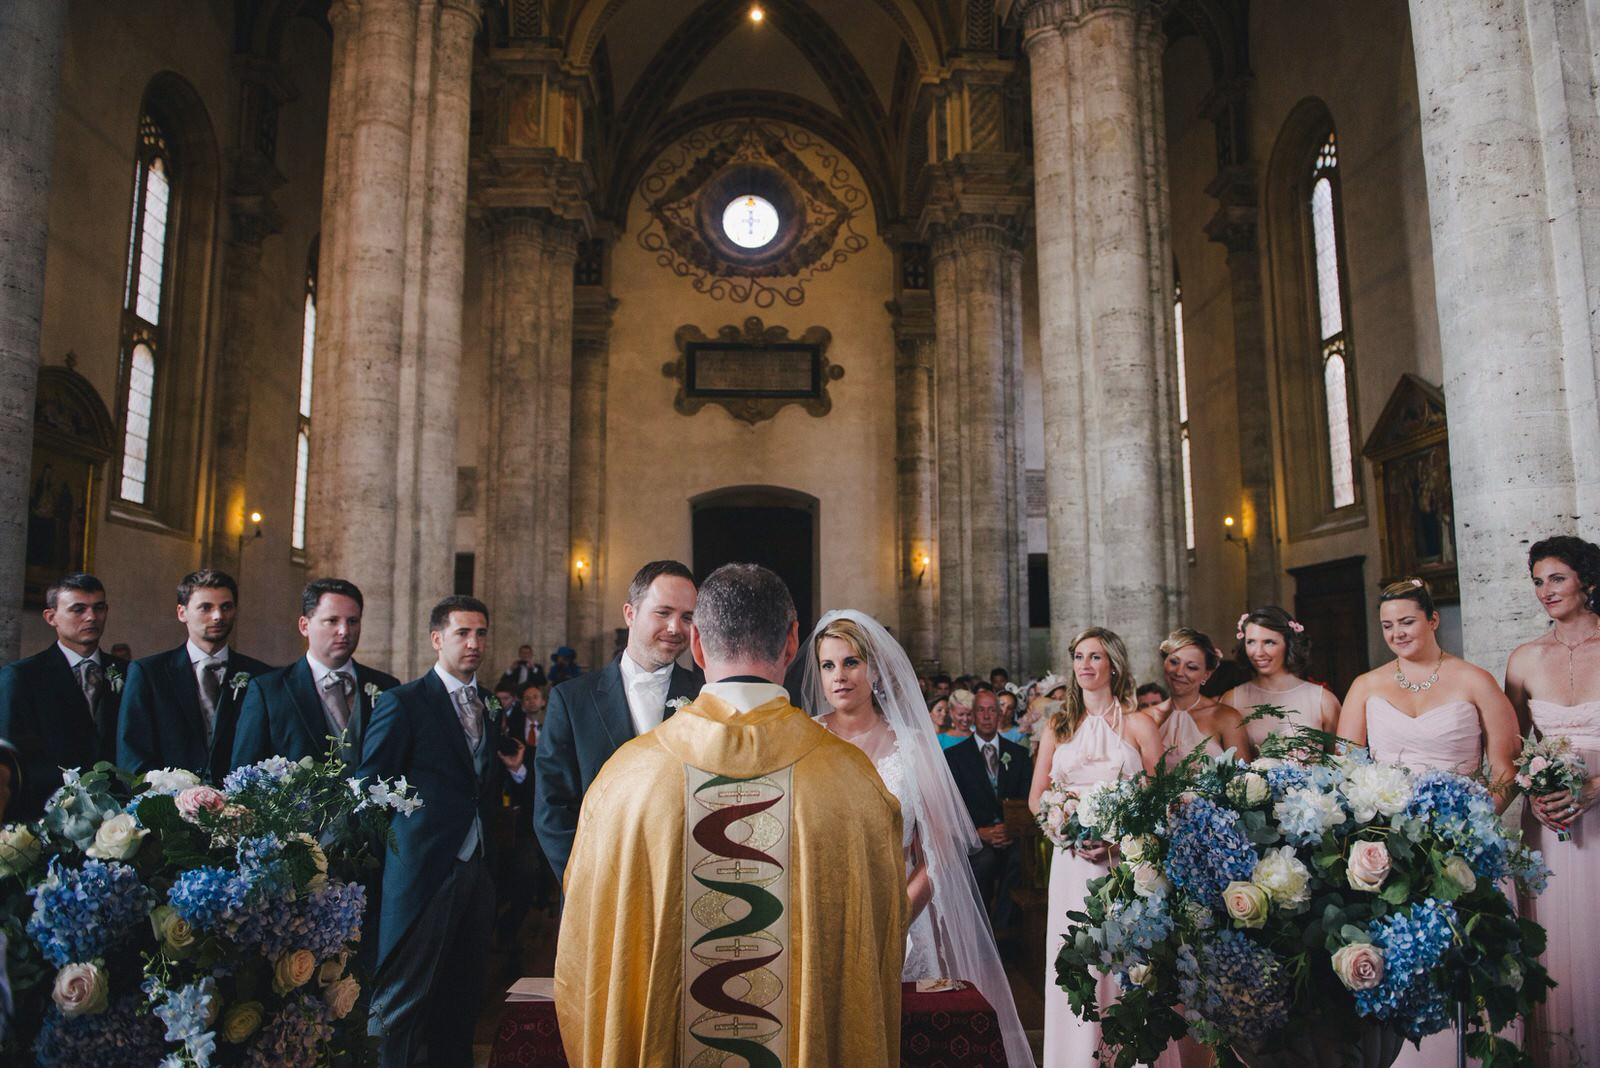 tuscany wedding bride, groom and witnesses inside the church